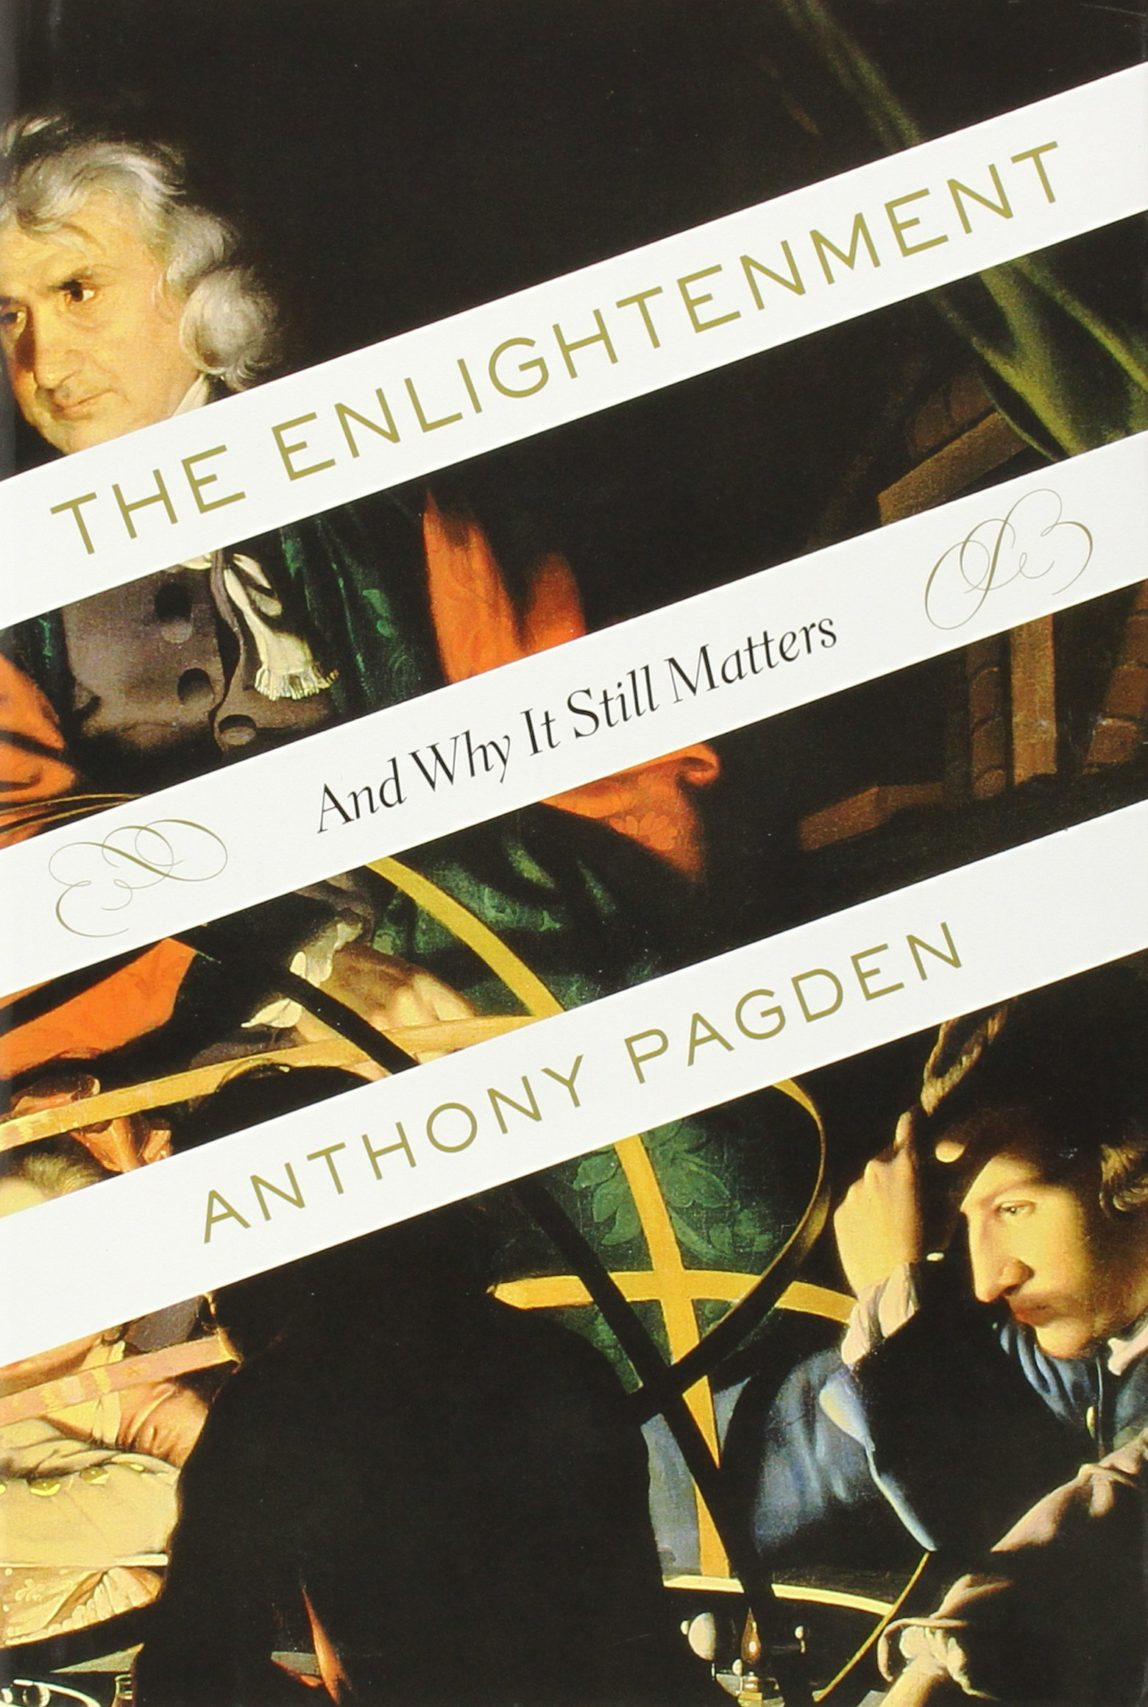 The Enlightenment and Why It Still Matters by Anthony Pagden